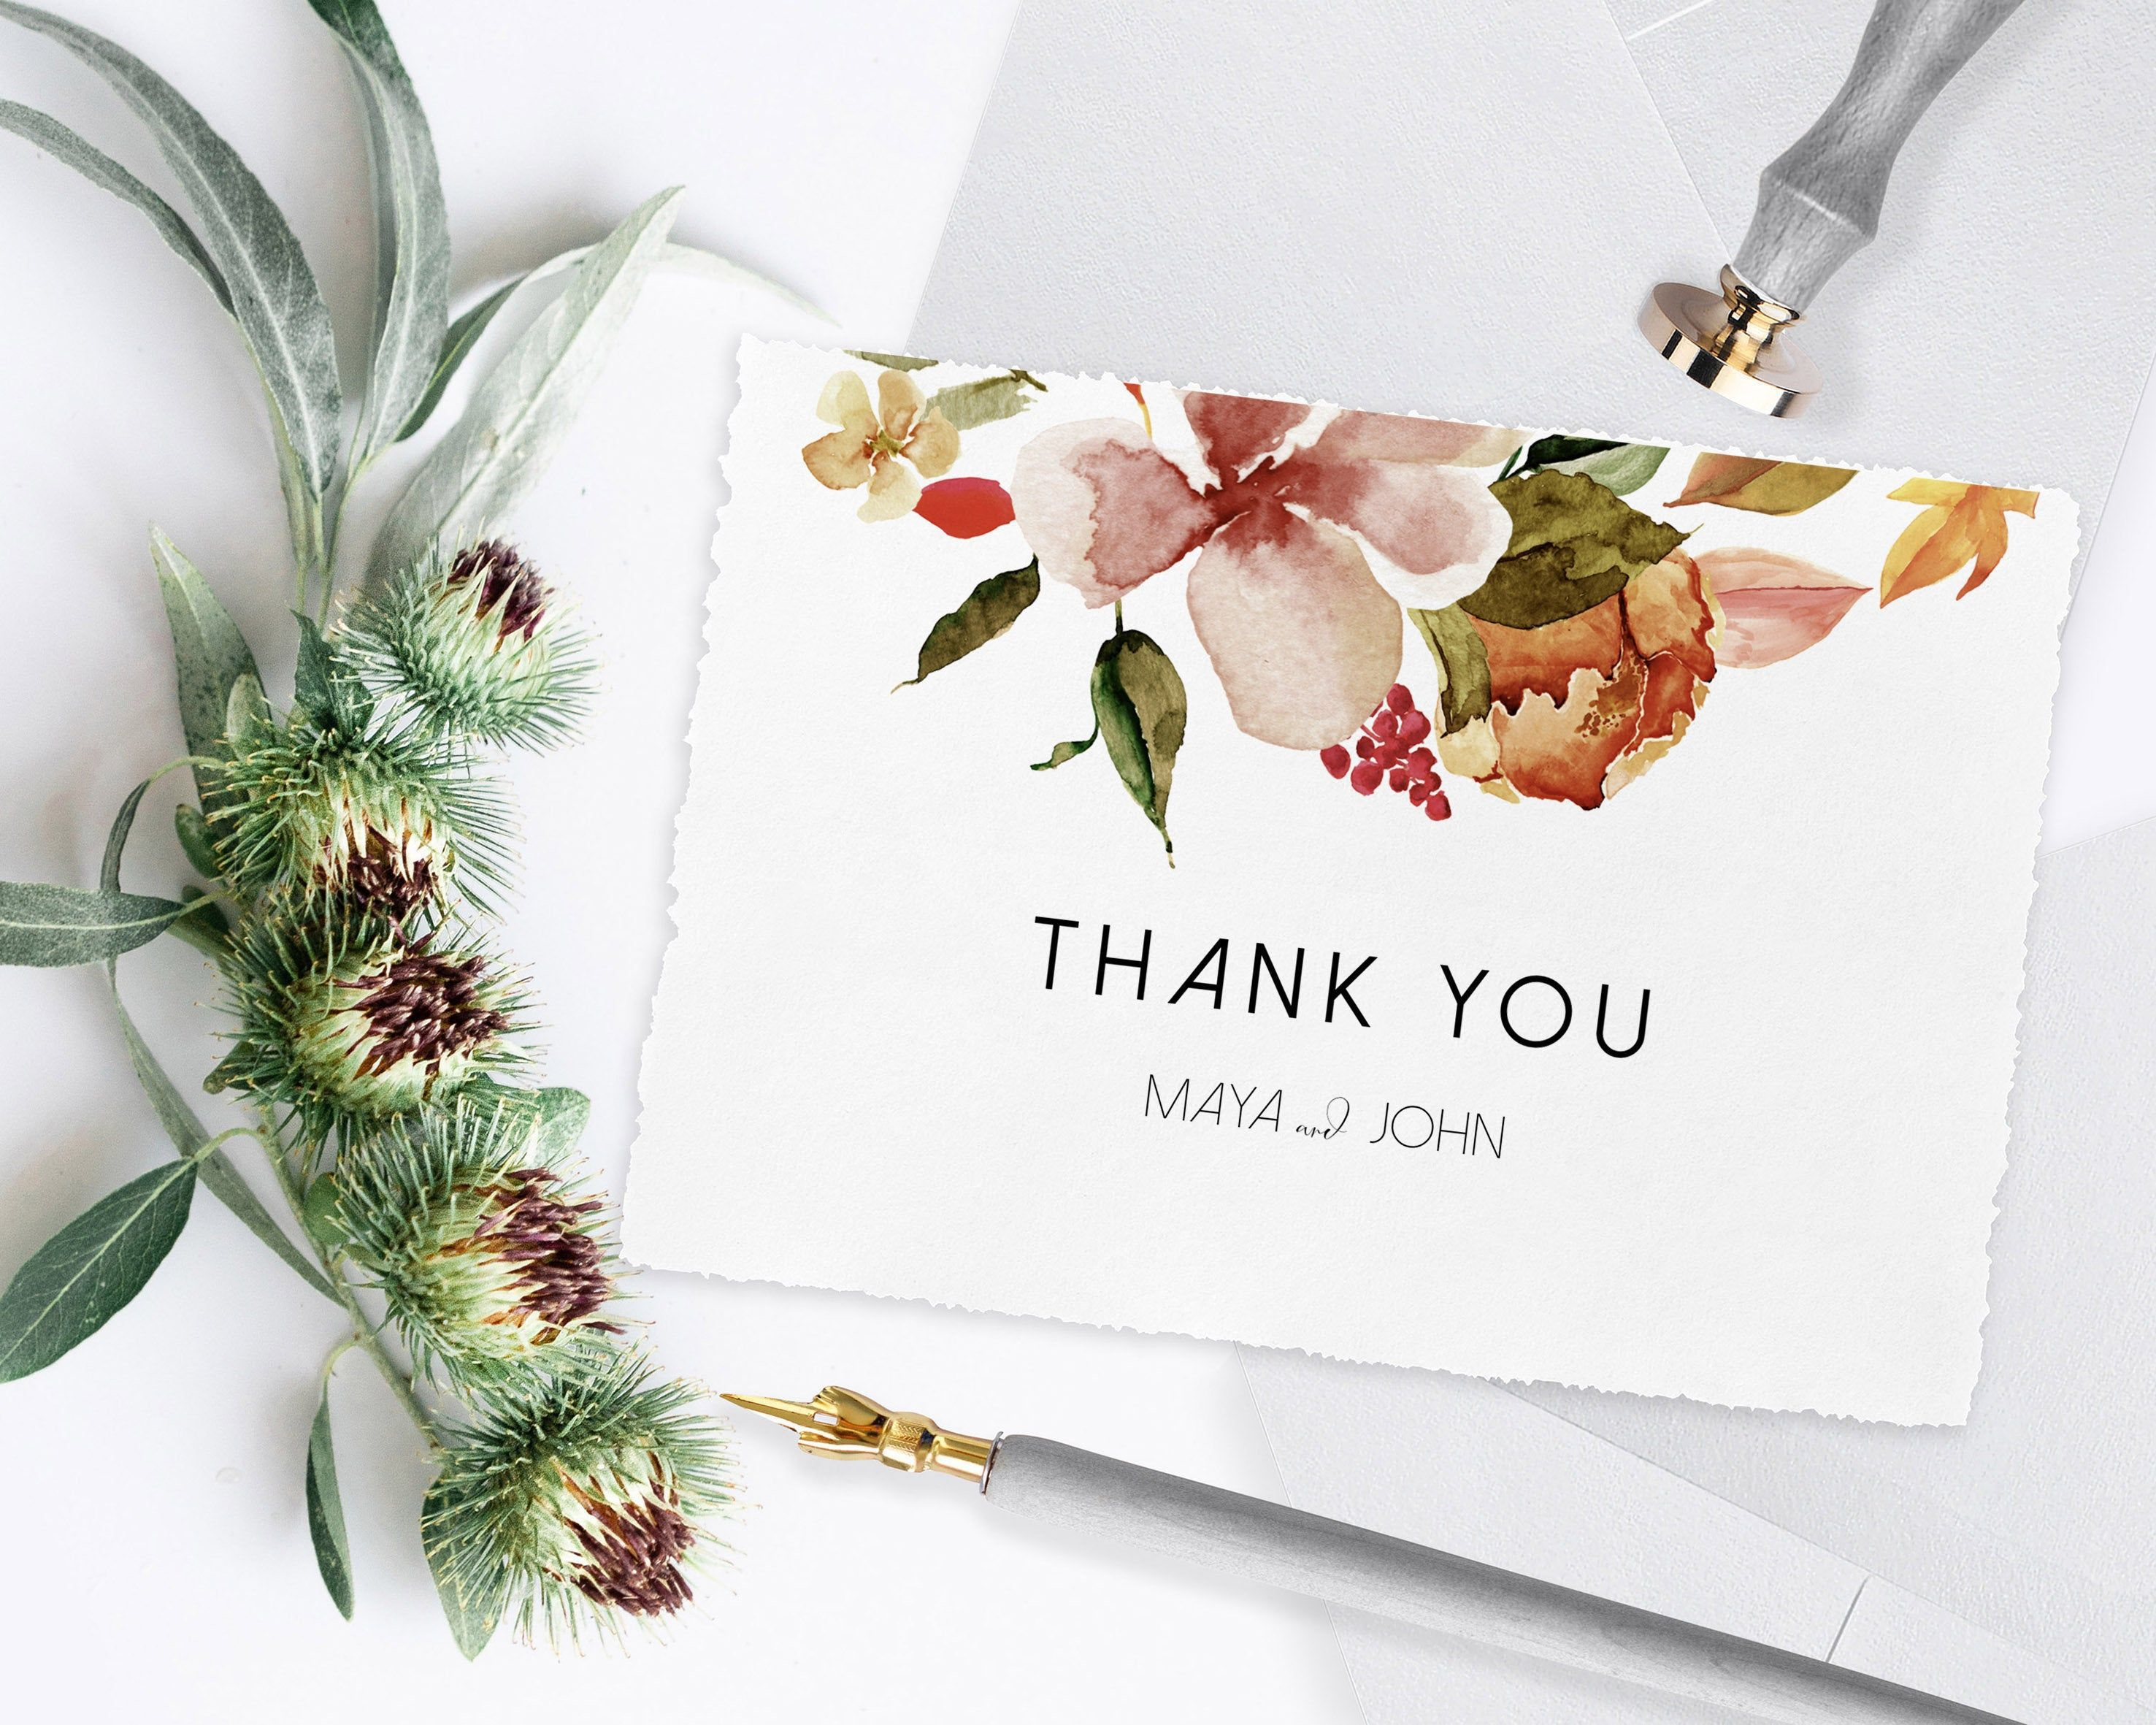 003 Incredible Diy Wedding Thank You Card Template High Resolution  TemplatesFull